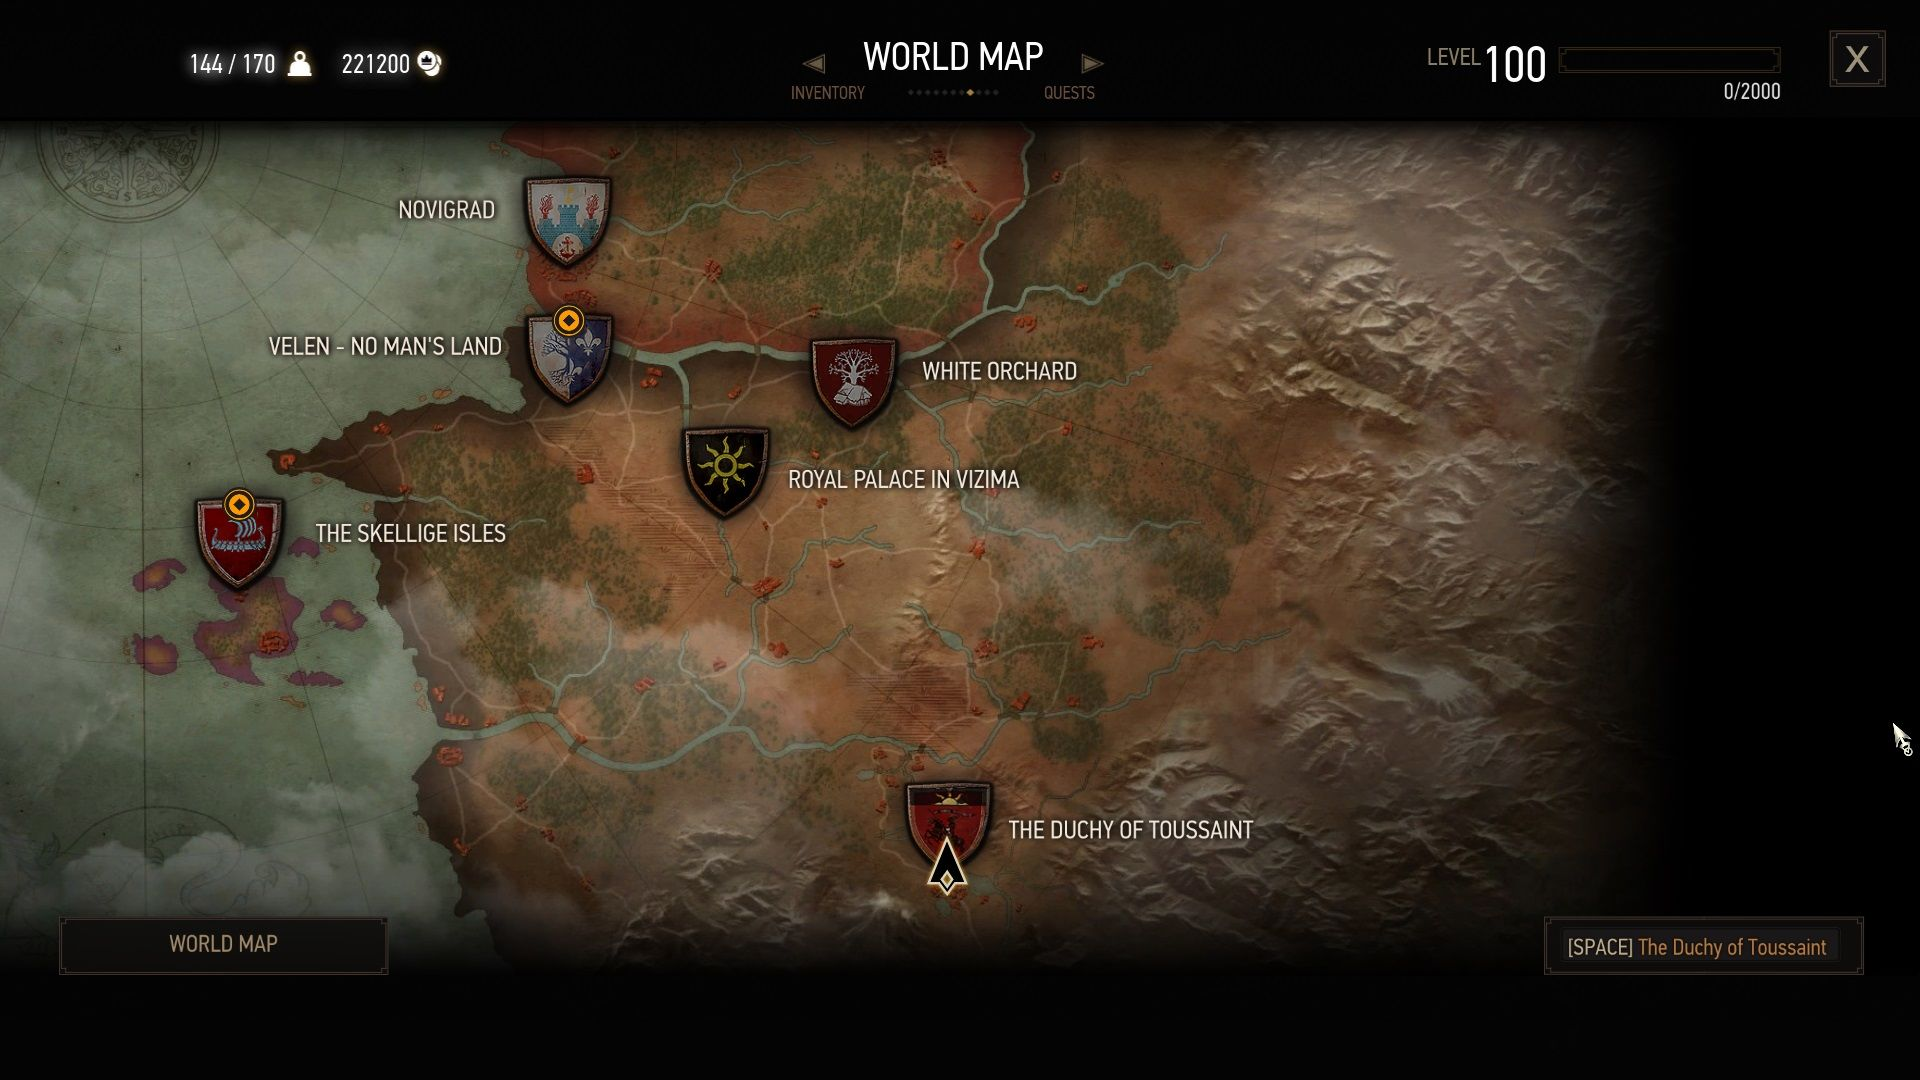 The witcher 3 wild hunt blood and wine screenshots for windows toussaint location on the world map deep in the nilfgaardian empire gumiabroncs Image collections